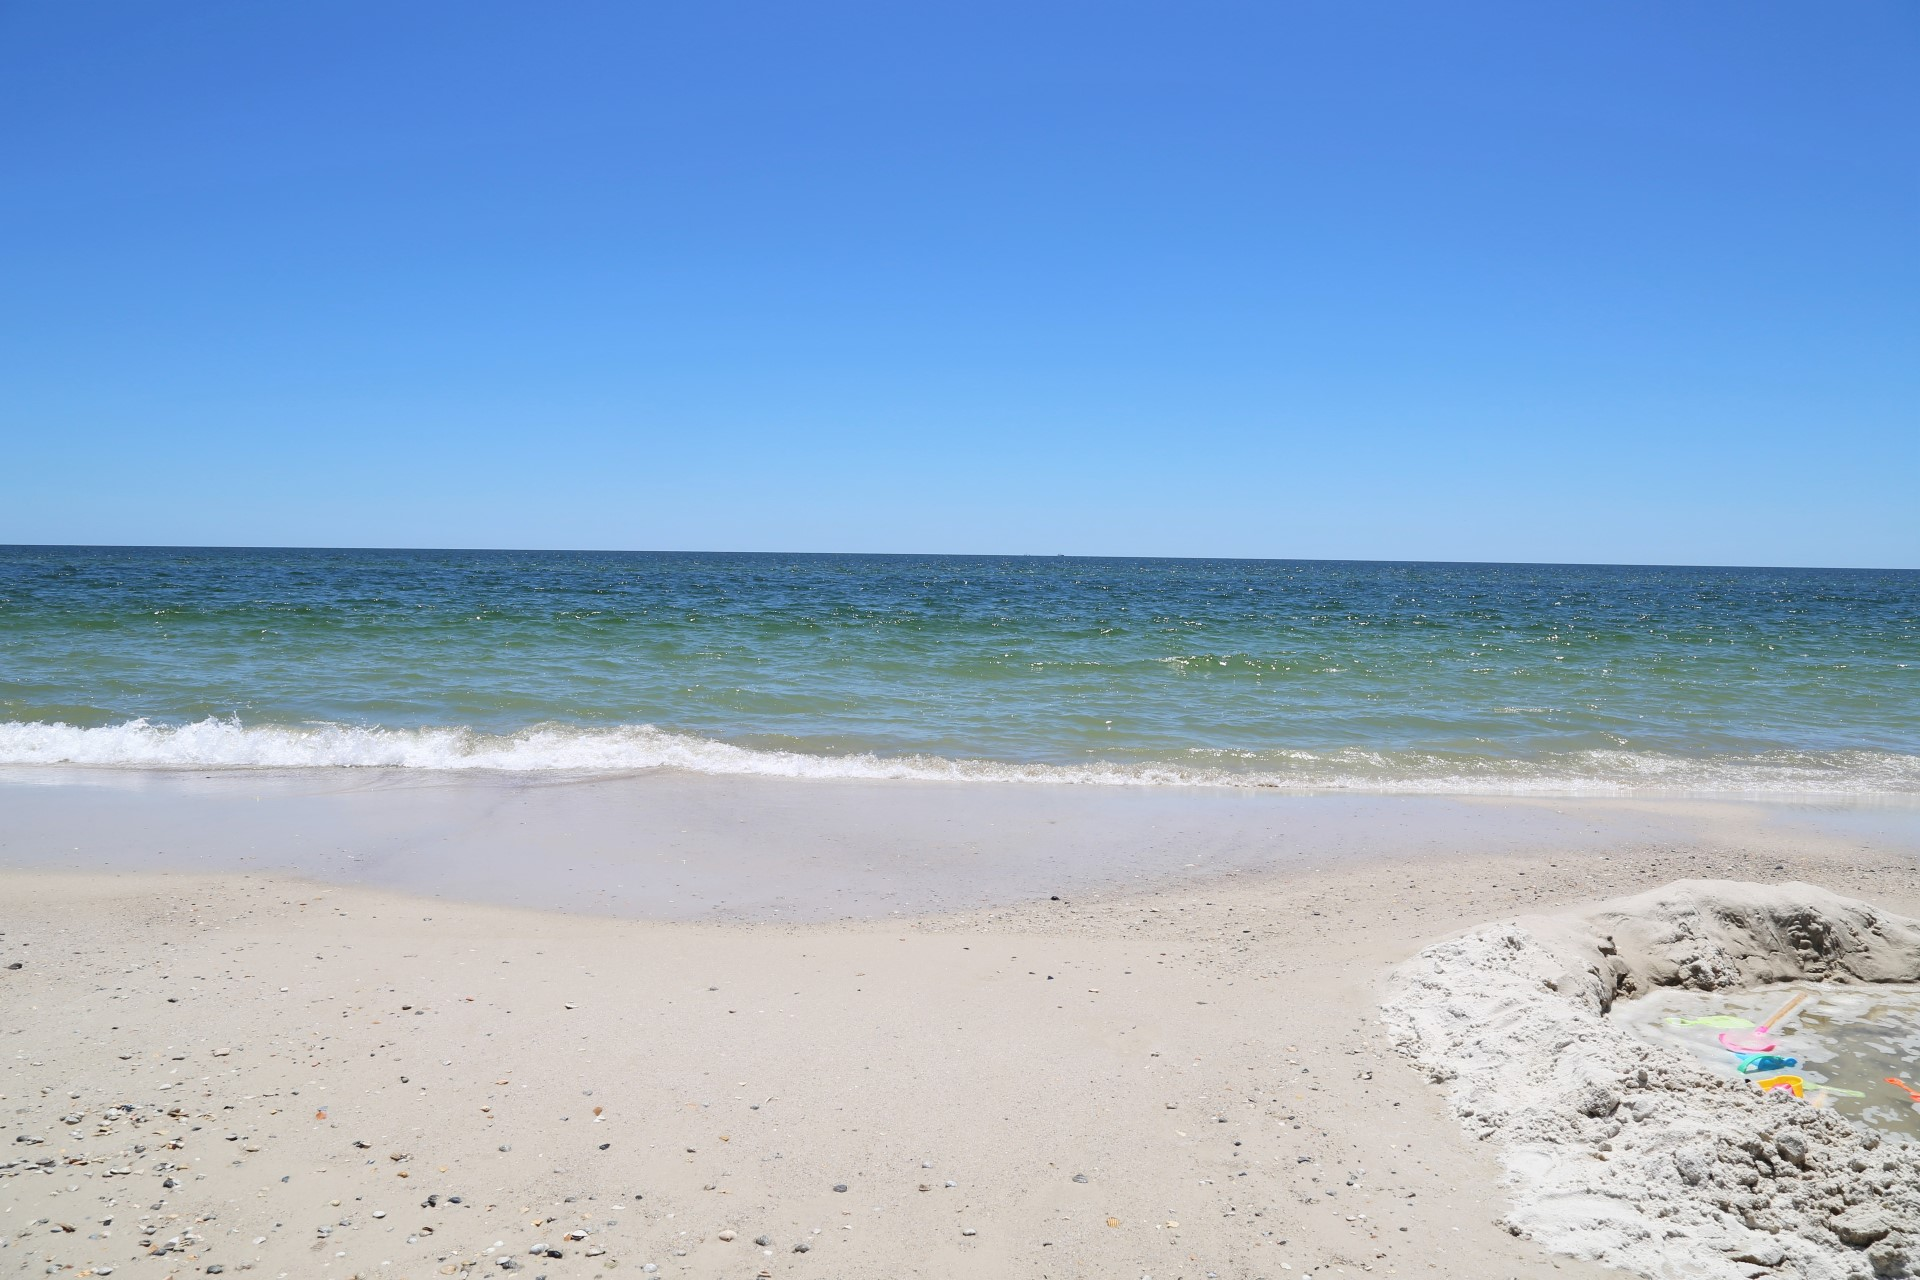 Build a sandcastle next to the sparkling emerald gulf water!